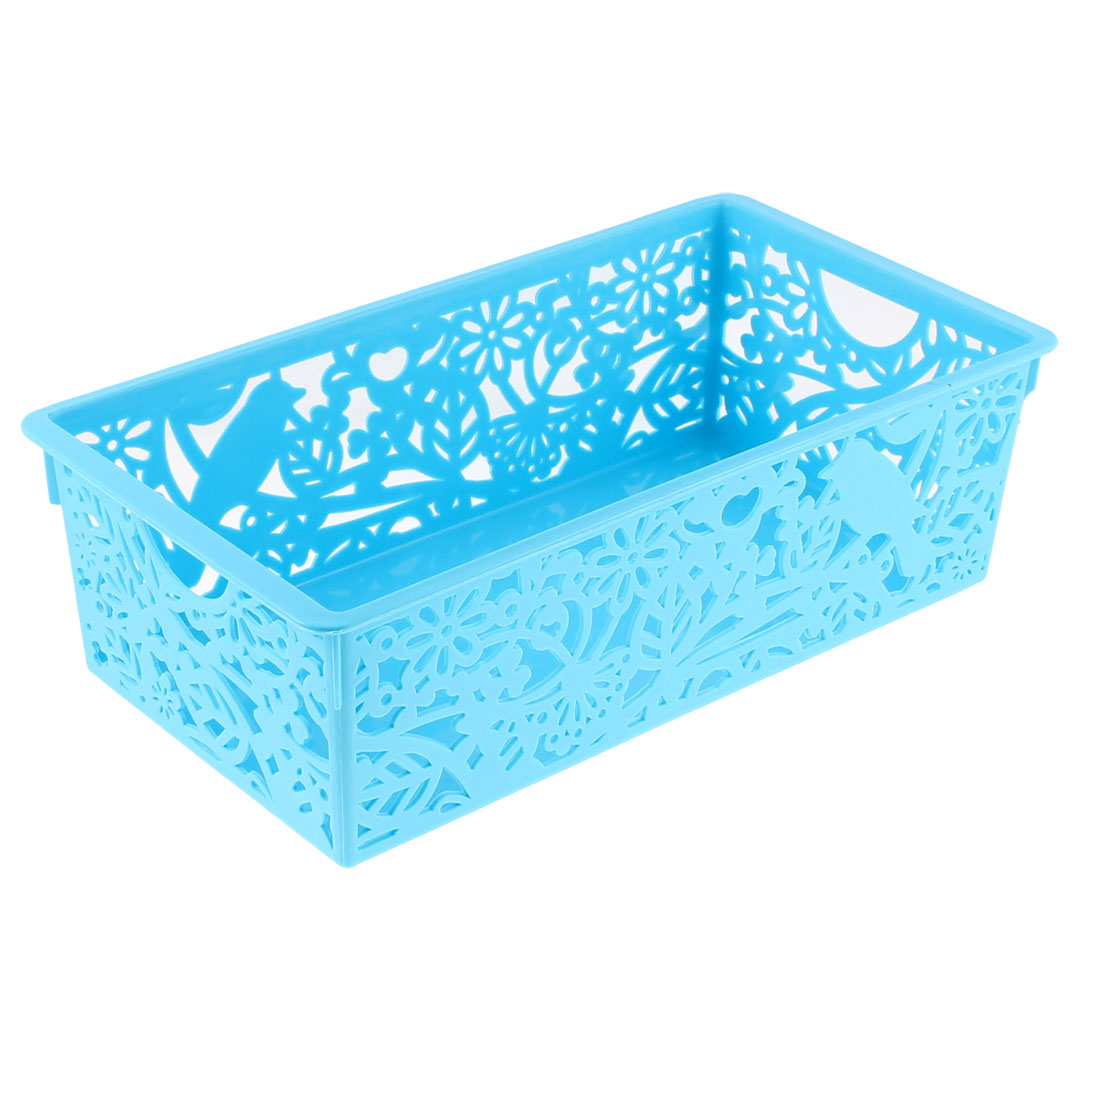 Home Plastic Hollow Out Floral Design Storage Basket 28cmx15cm Green